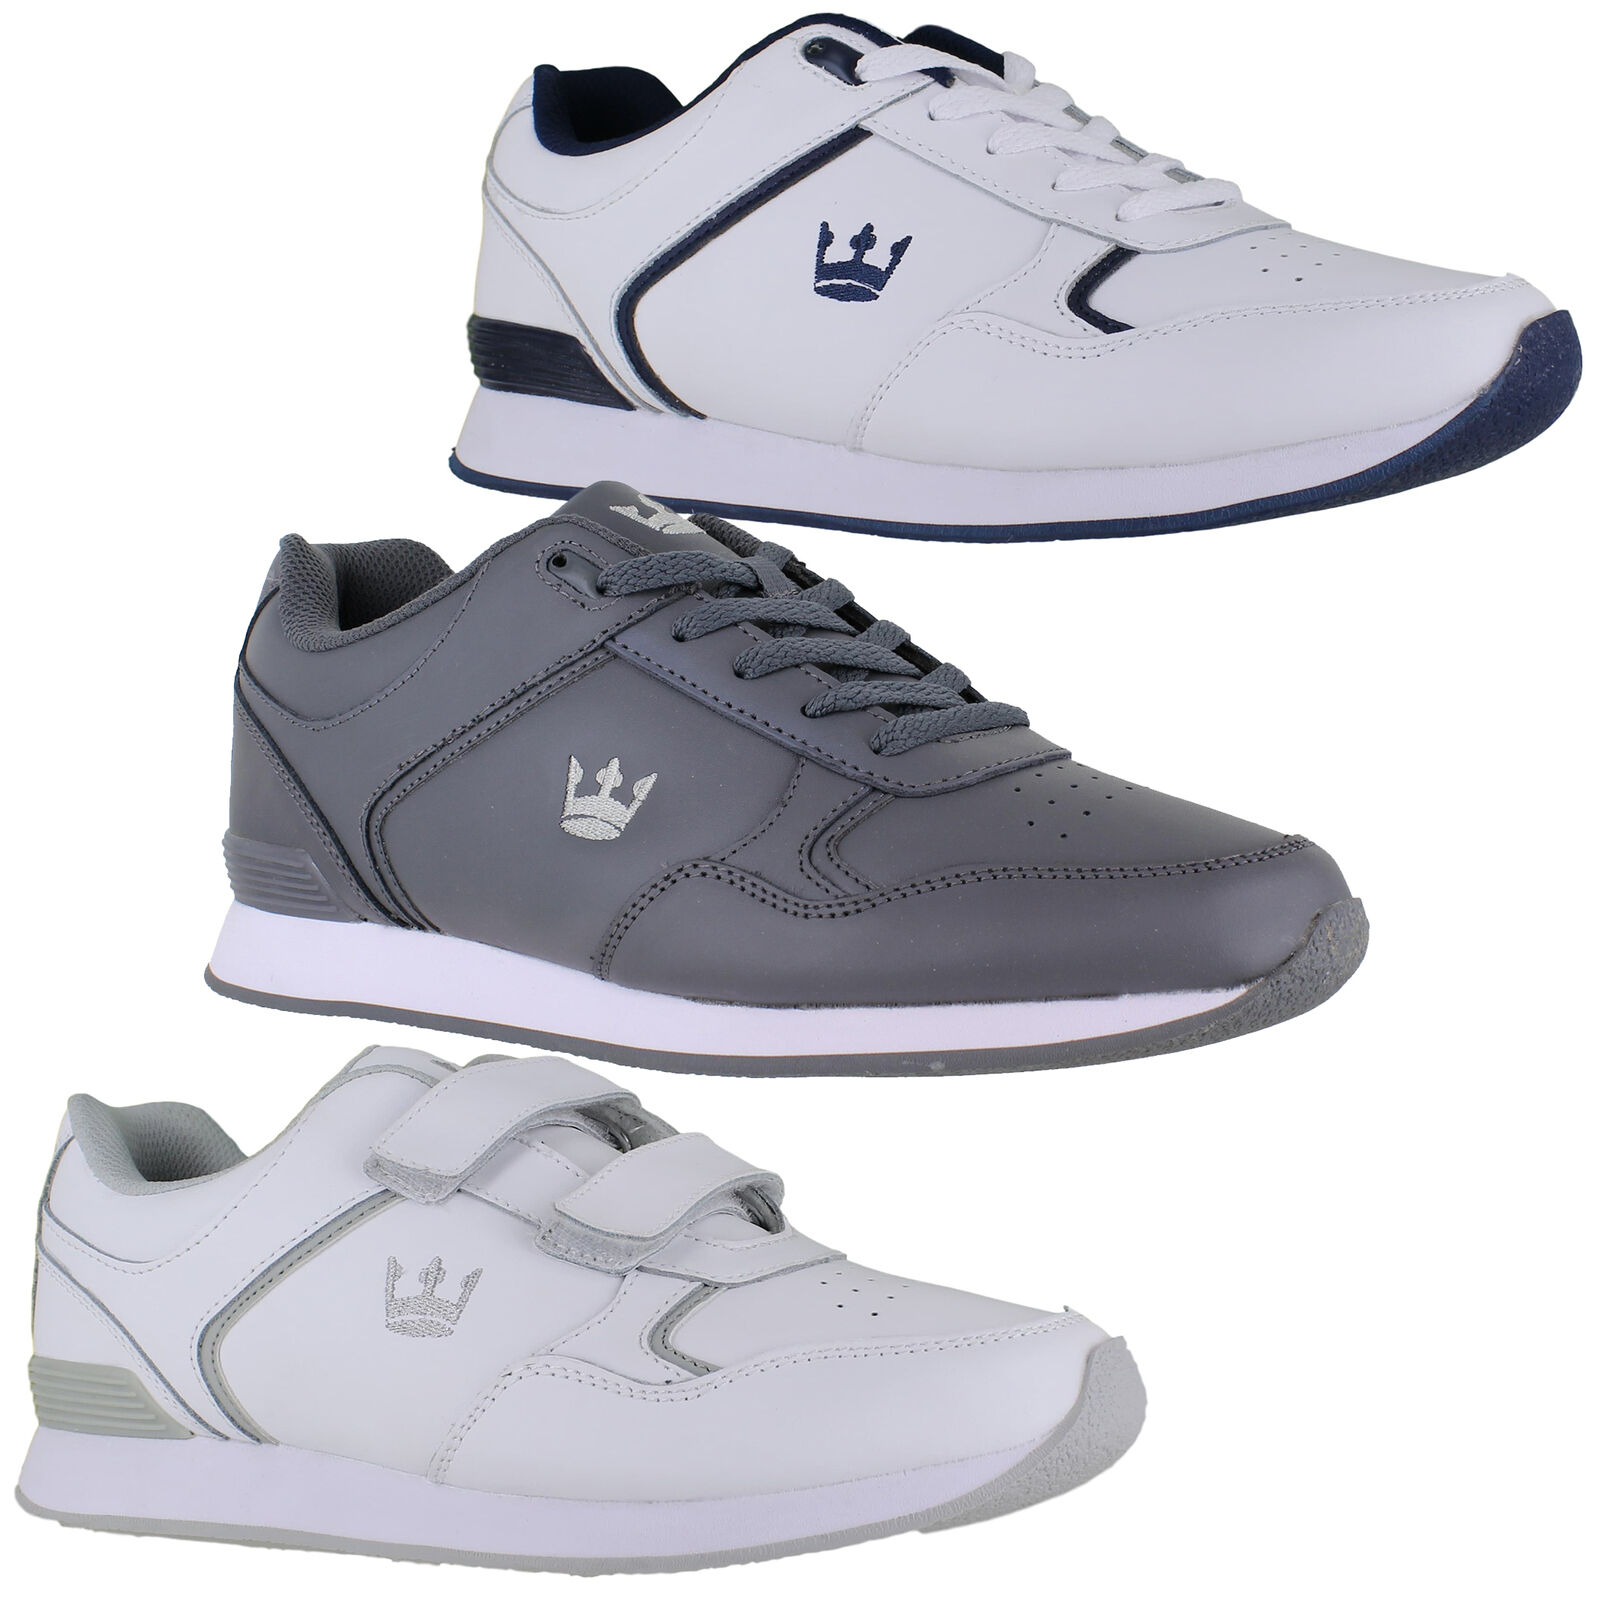 Mens Womens Crown King Leather Lace/Touch Fasten Bowls Shoes Sizes 4 to 12